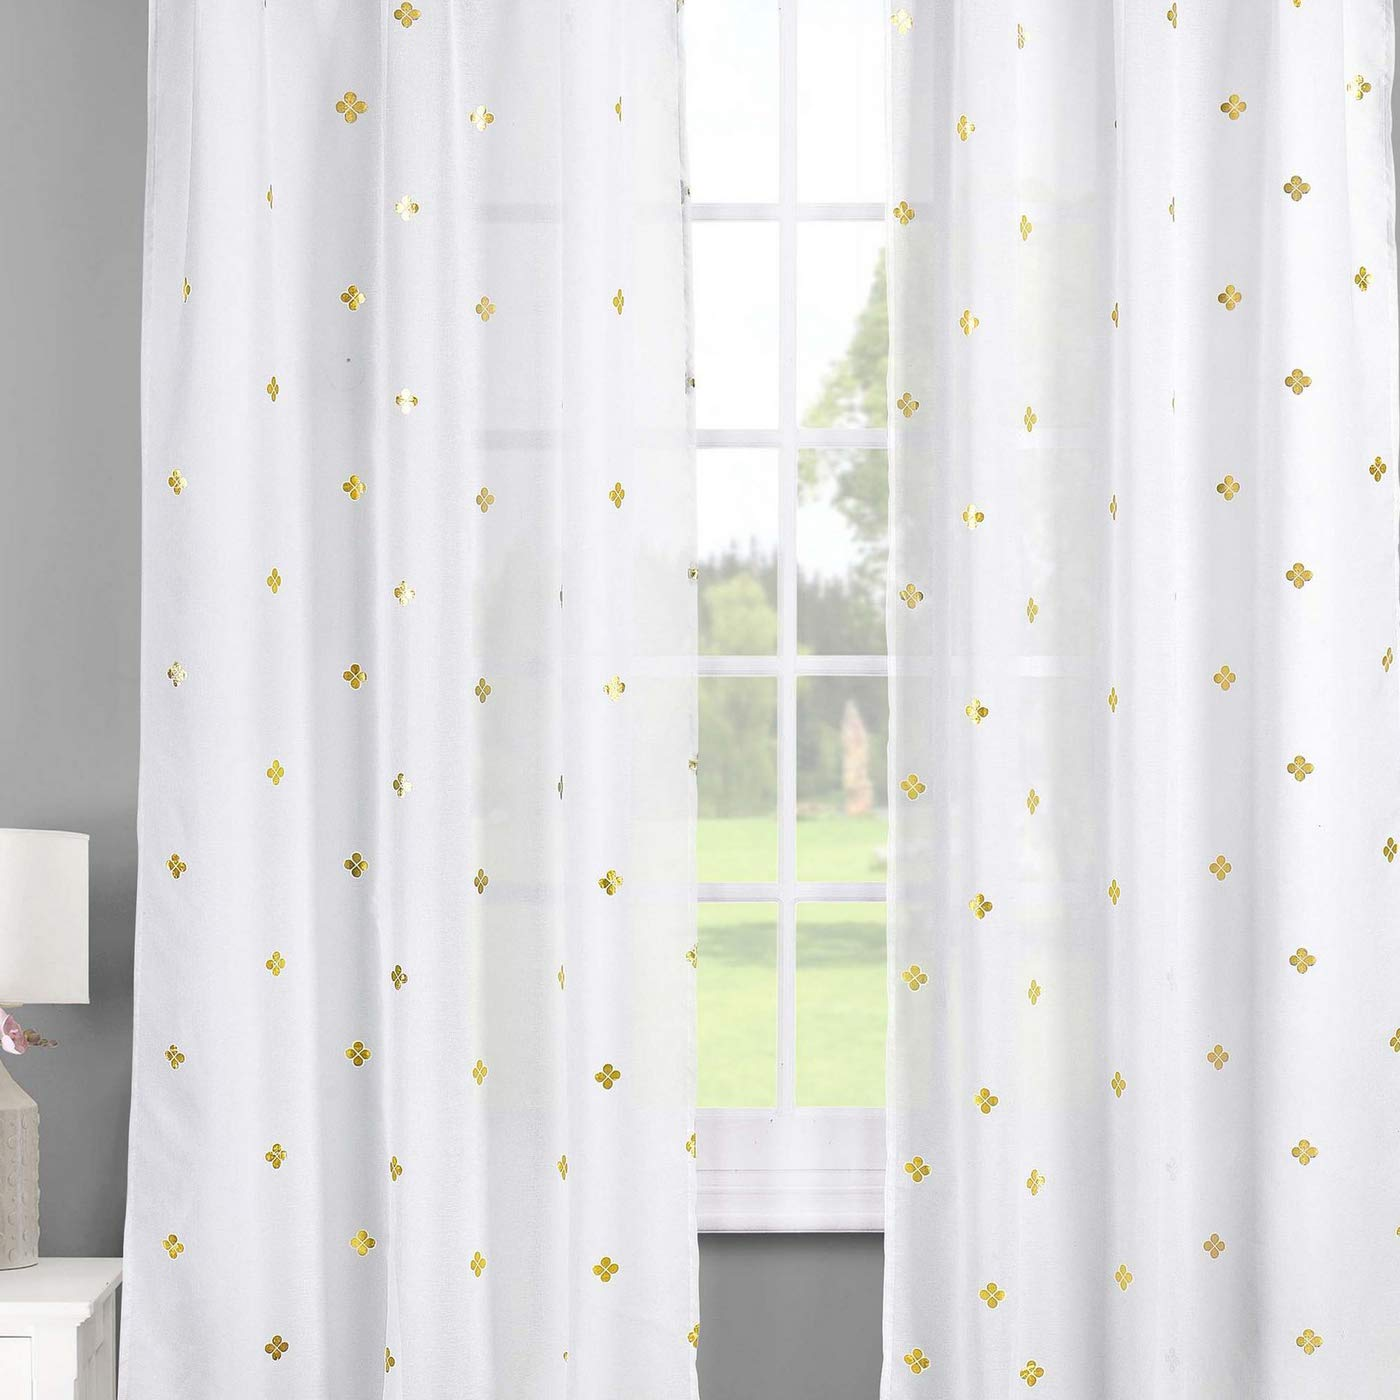 Livingroom Nursery-Assorted Colors-Set of 2 Panels 38 x 84 Inch Children Bash Becca Metallic Clover Pole Top Window Curtain Drapes for Bedroom Kids Room Lala White /& Gold